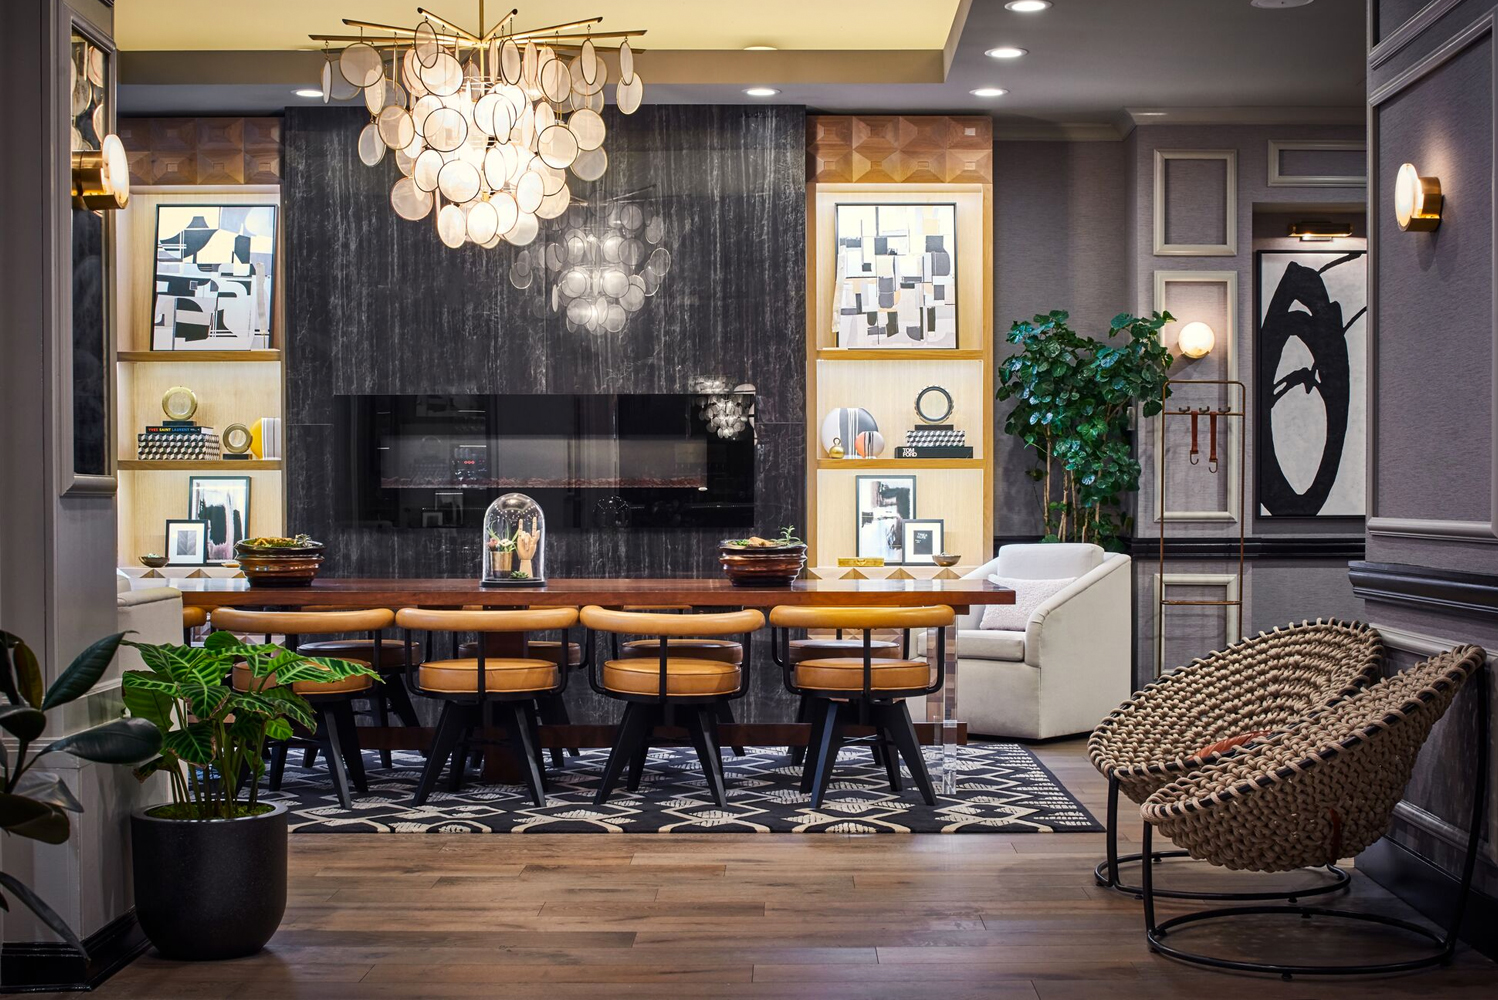 Design-wise, the property now evokes a contemporary Gold Coast Chicago residence.